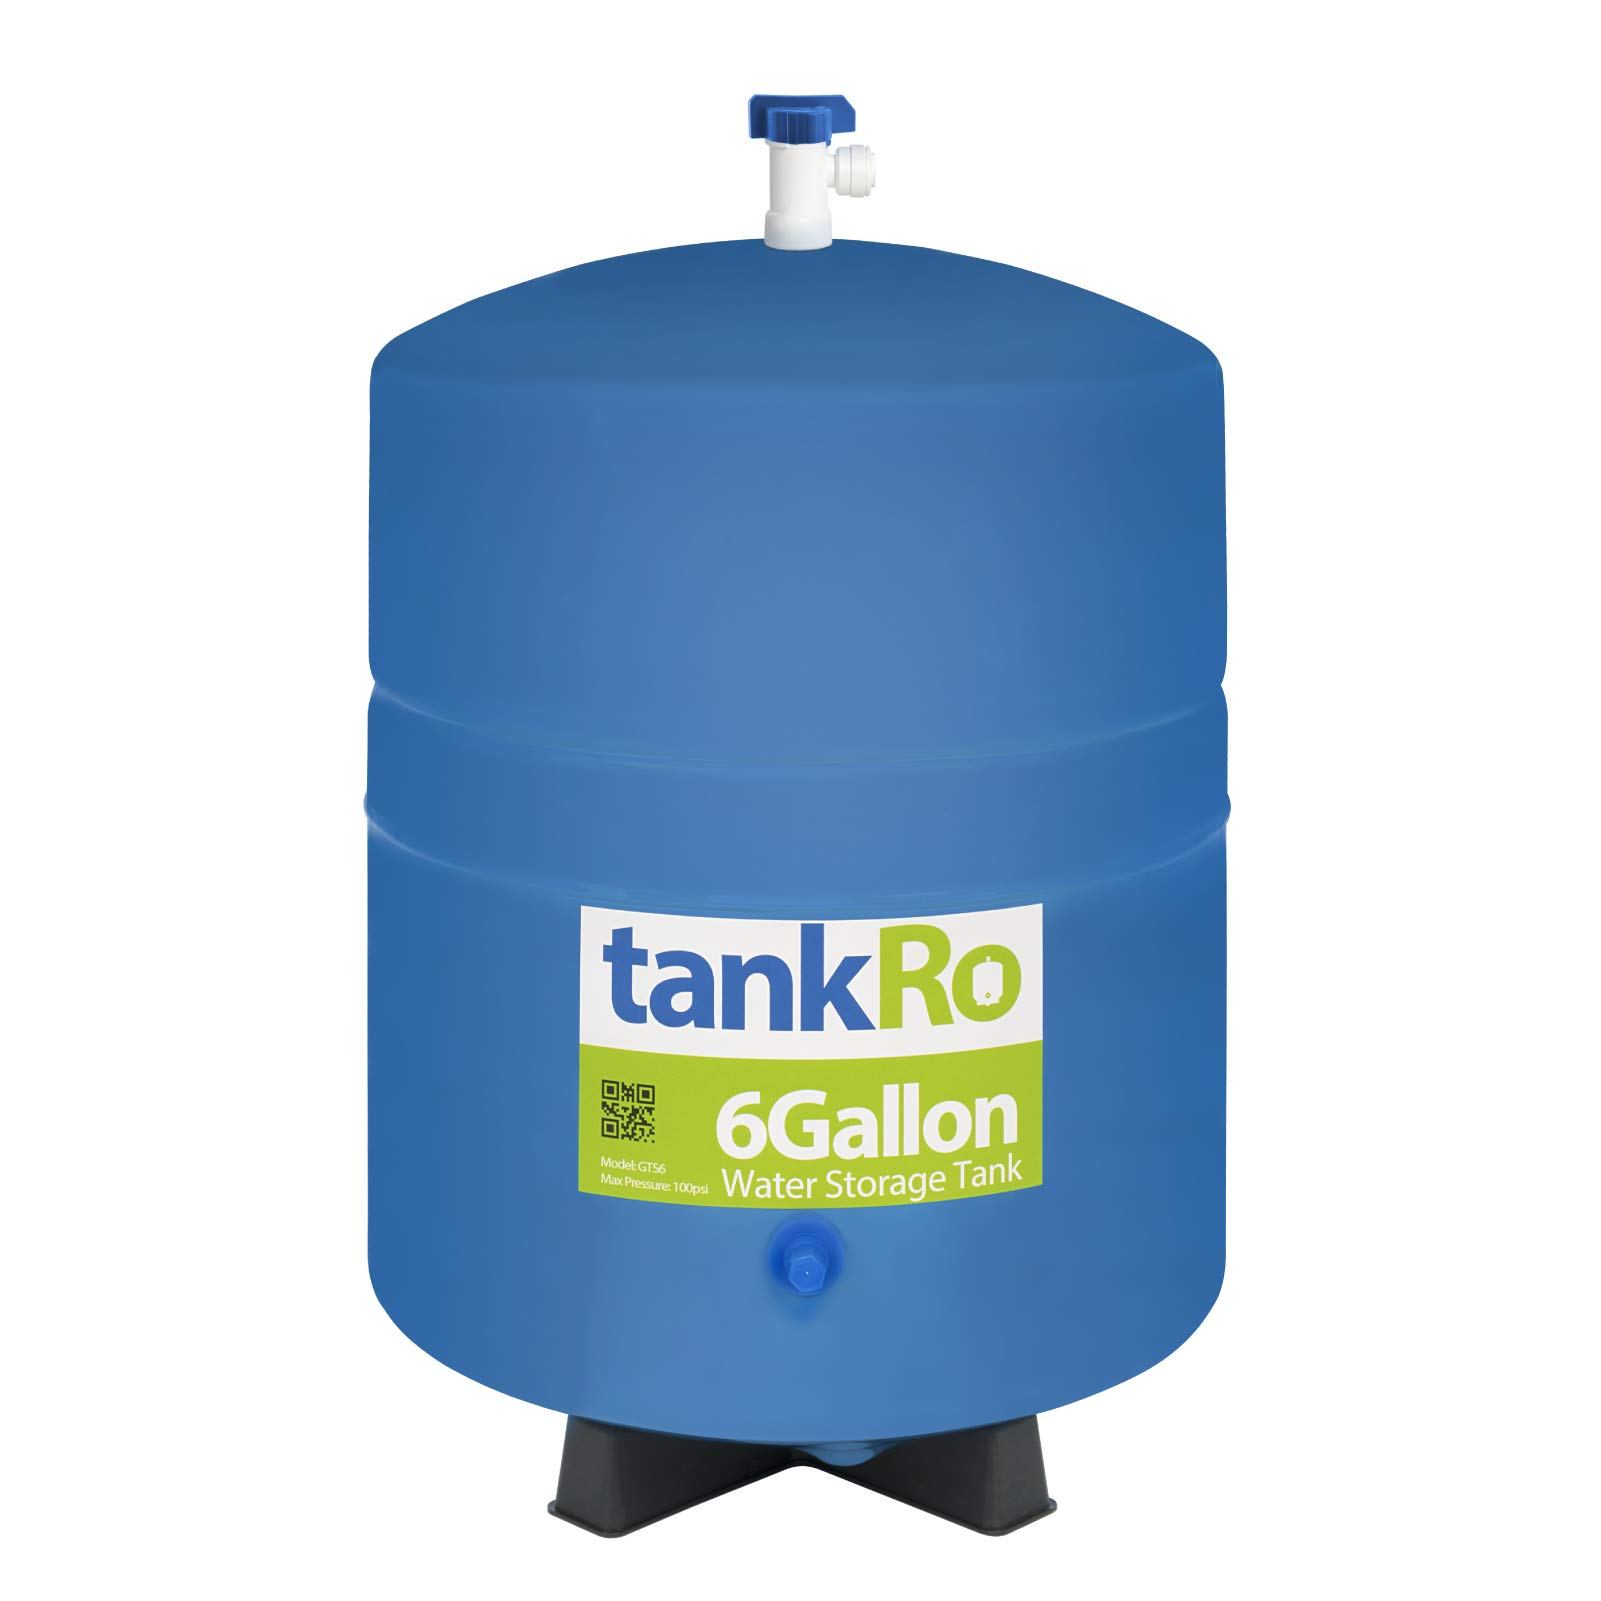 tankRo 6 Gallon RO Expansion Tank - Compact Reverse Osmosis Water Storage Pressure Tank with Free Tank Ball Valve by tankRo